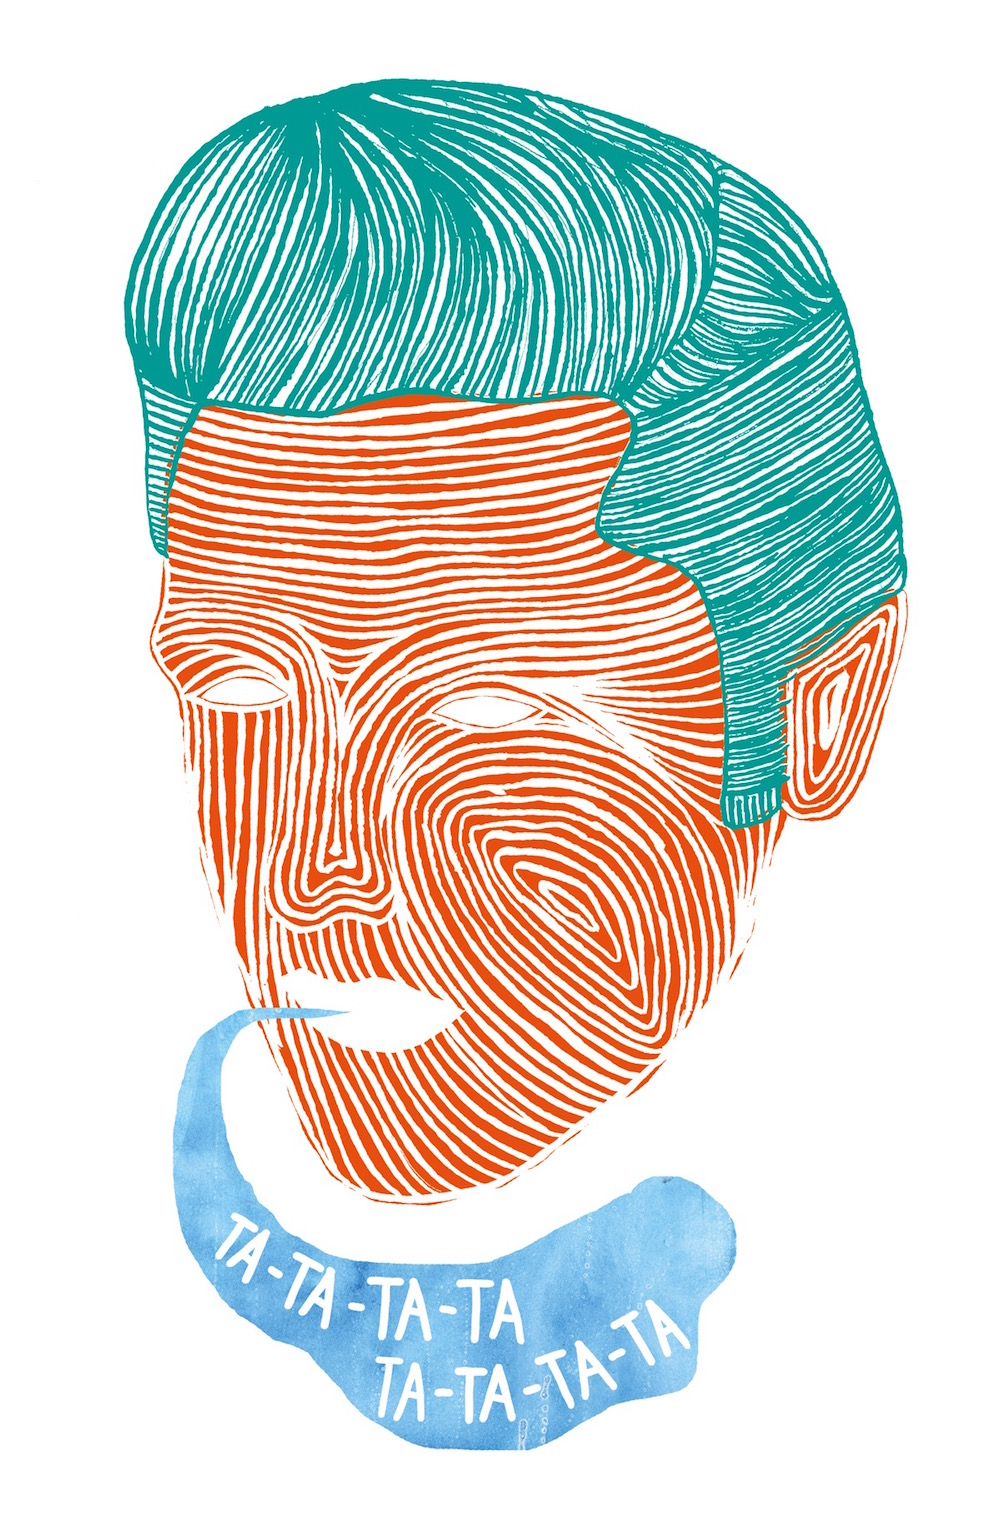 illustration, illustrations, illustrator, illustrators, hair, hairs, ta, swirl, stroke, strokes, man, men, human, hairstyle